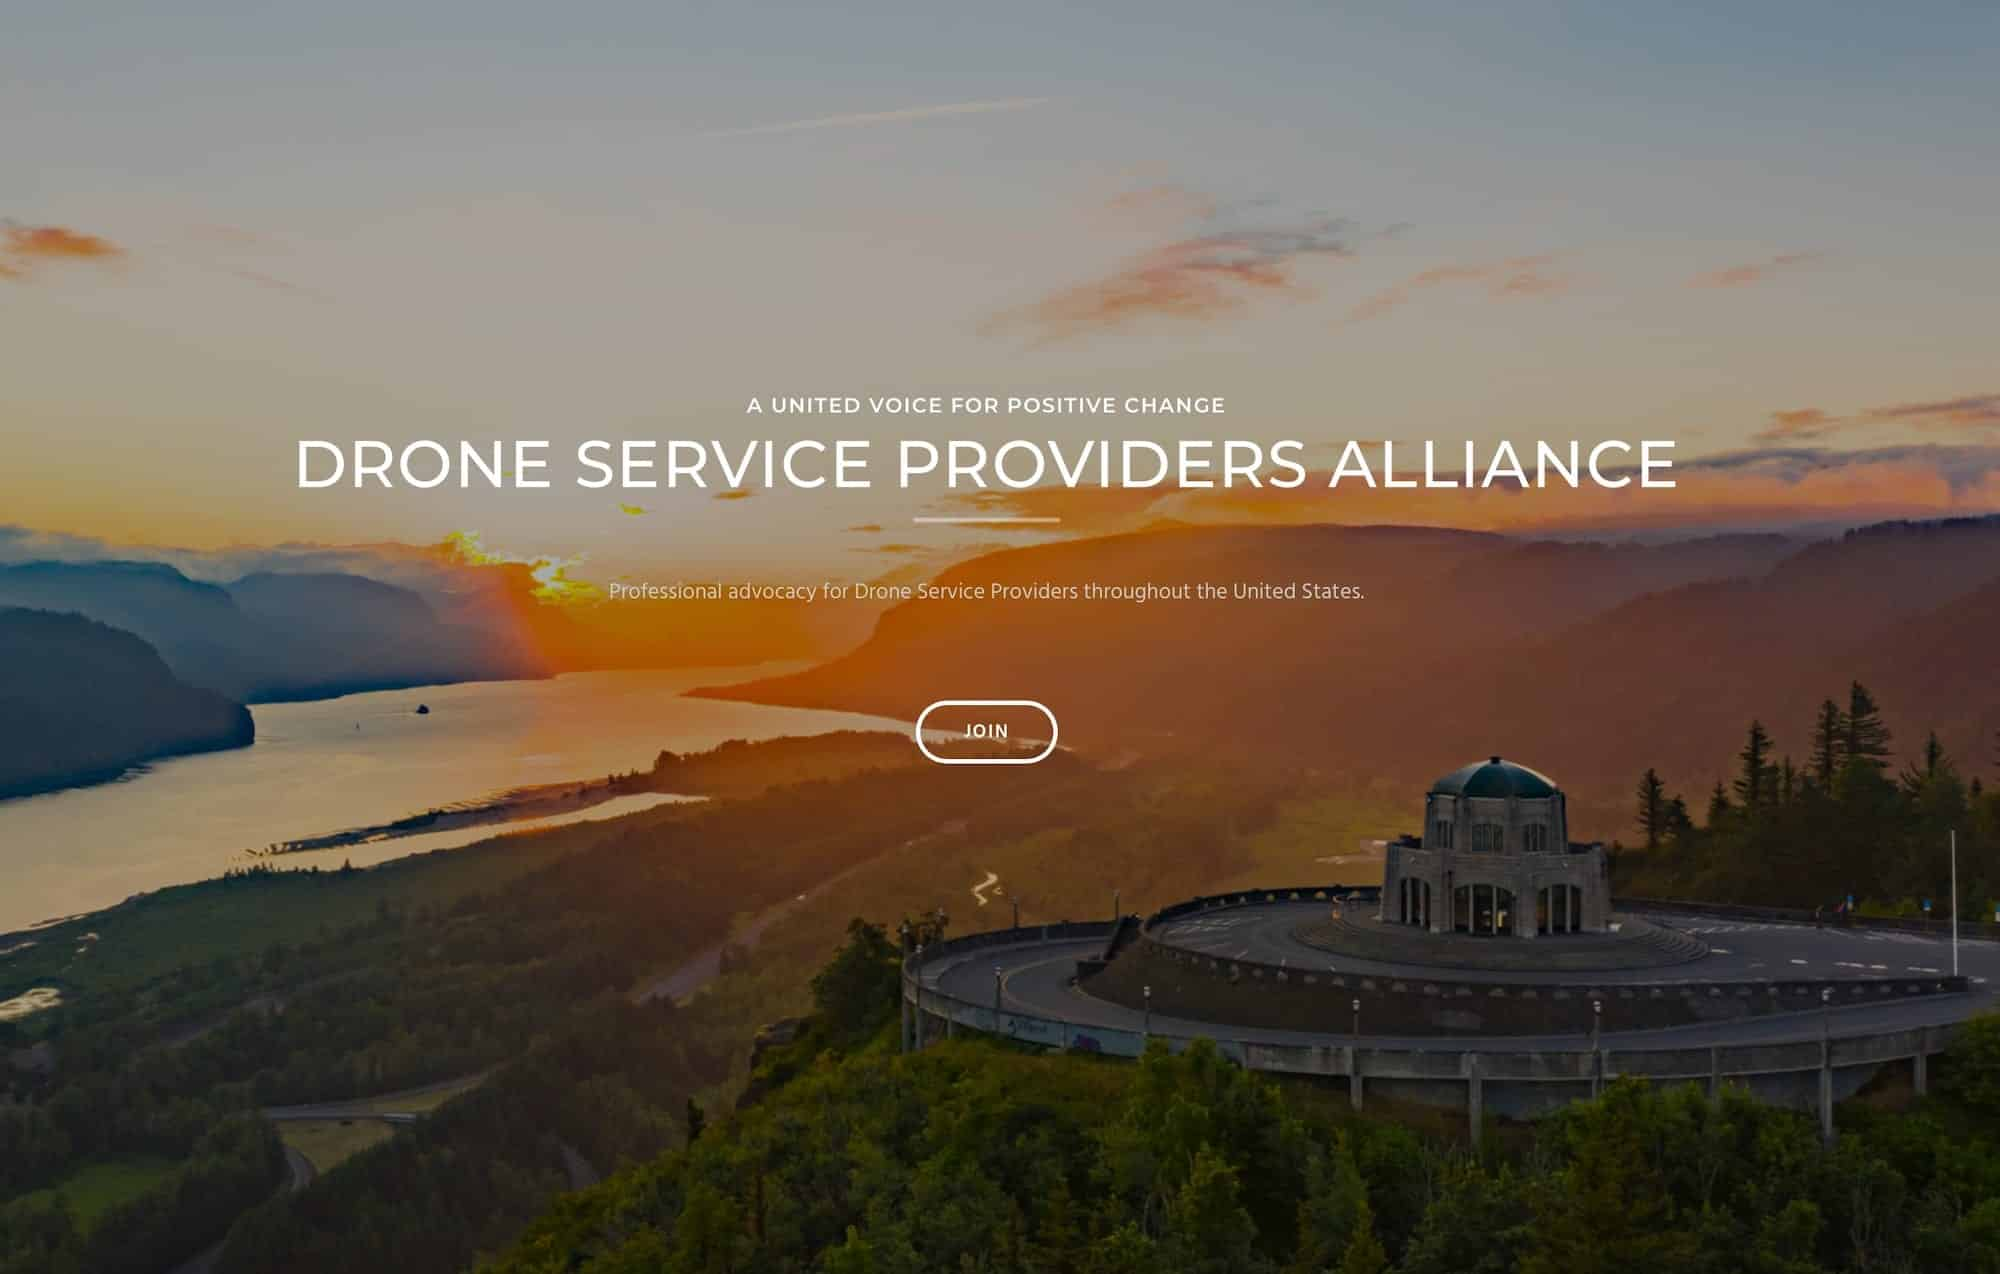 The Drone Service Providers Alliance officially launches today